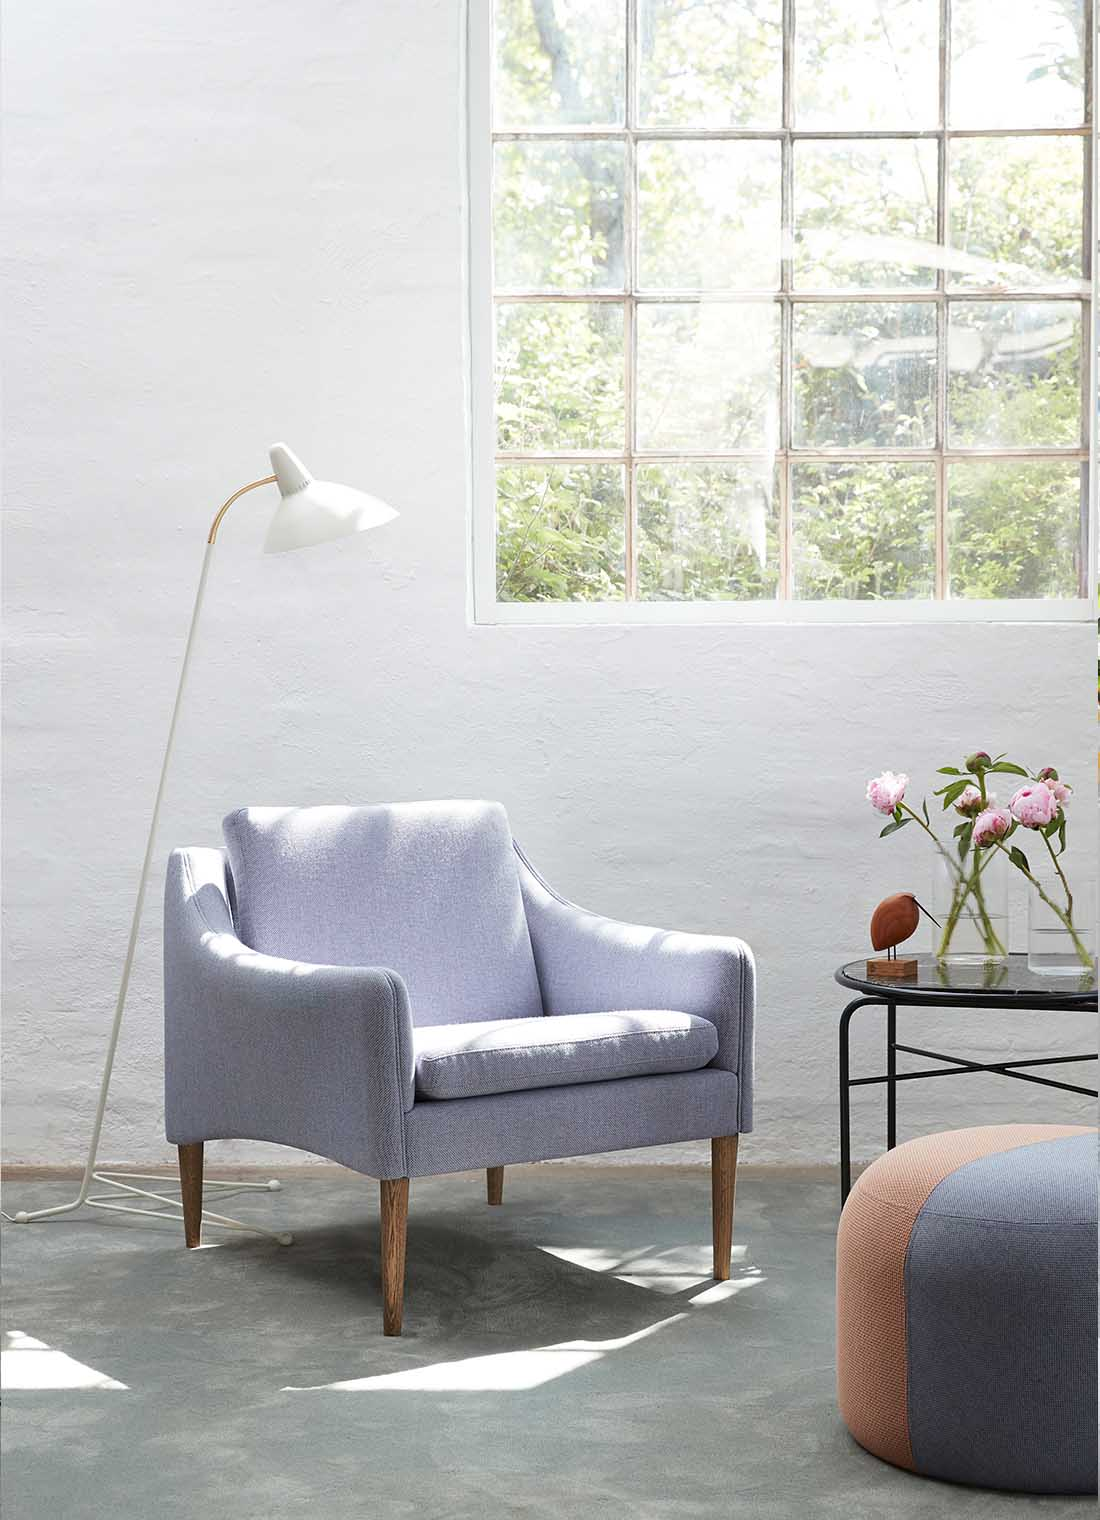 Mr. Olsen lounge chair in soft violet with a pouf.